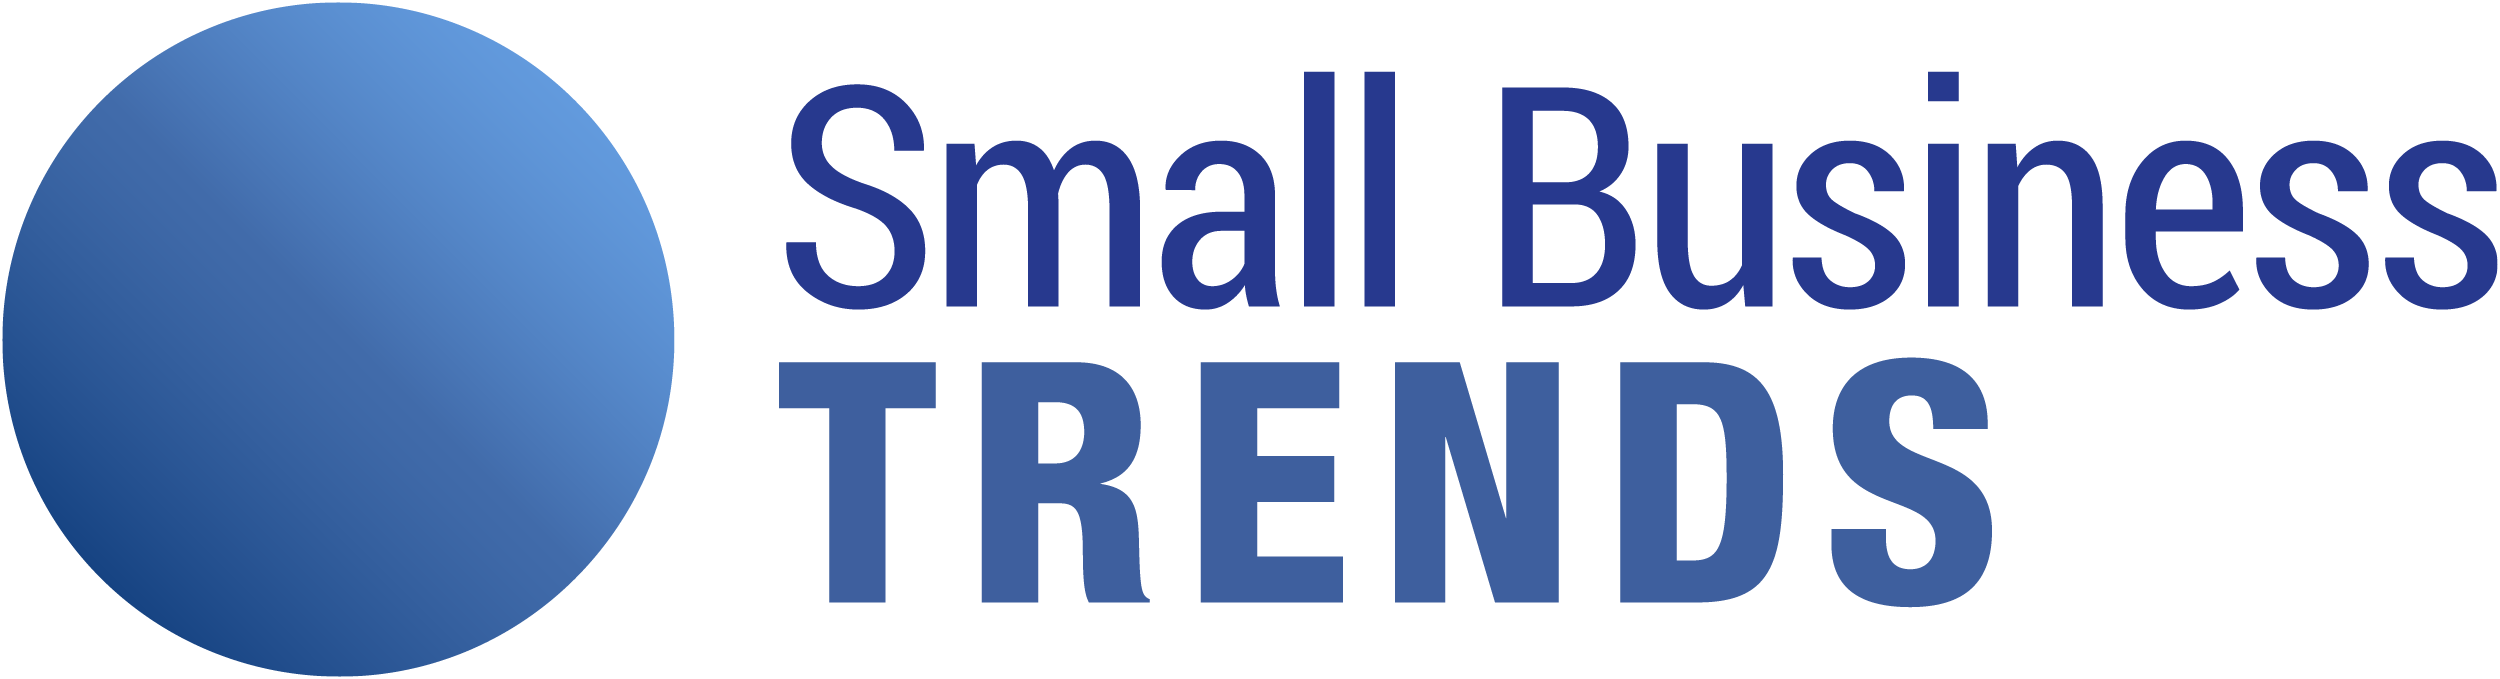 Small-Business-Trends-logo